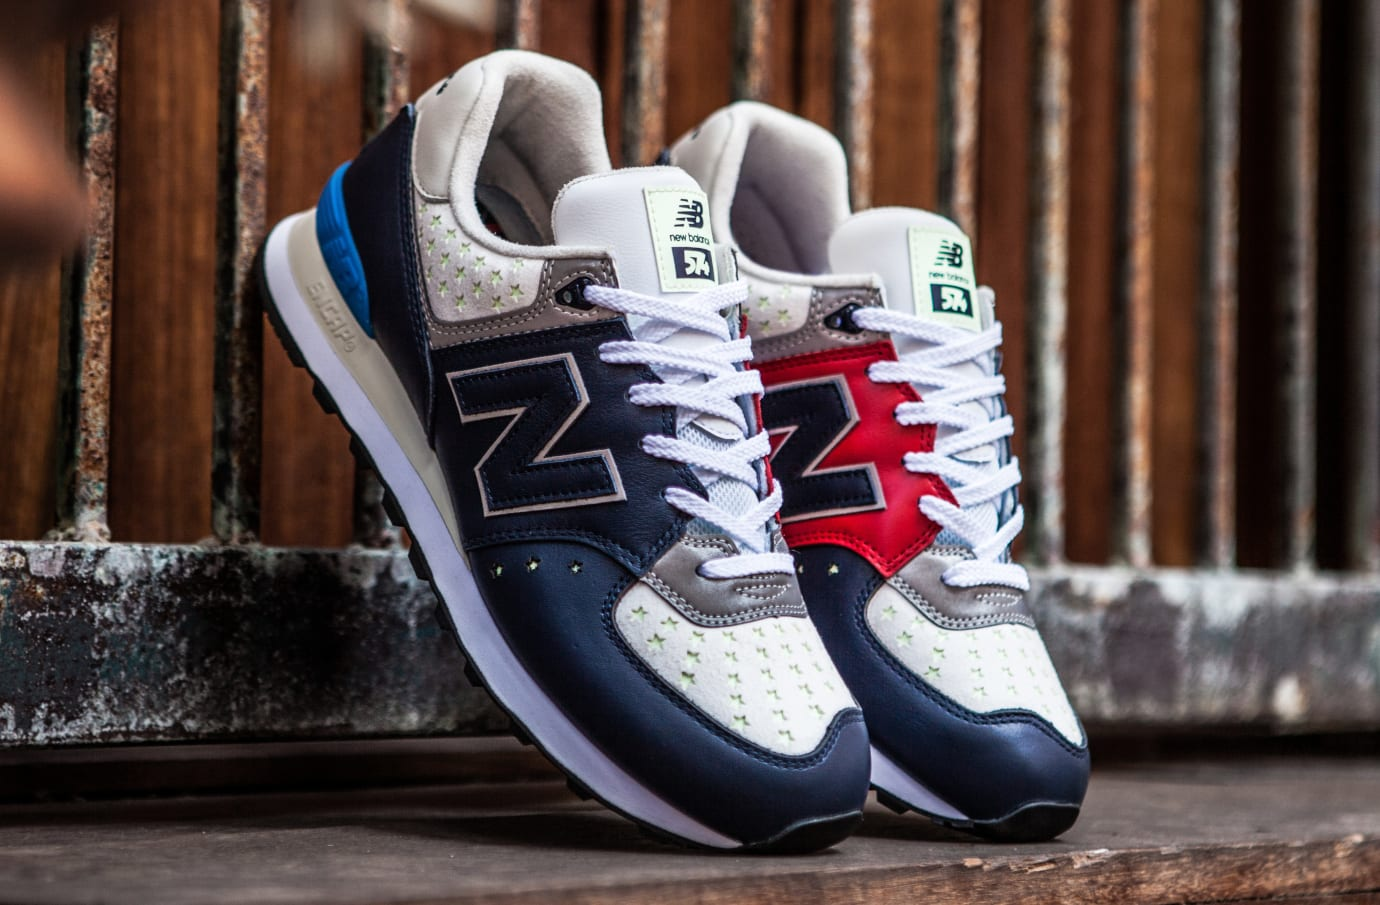 New Balance Celebrates Its Reconstructed Iconic 574 Sneaker